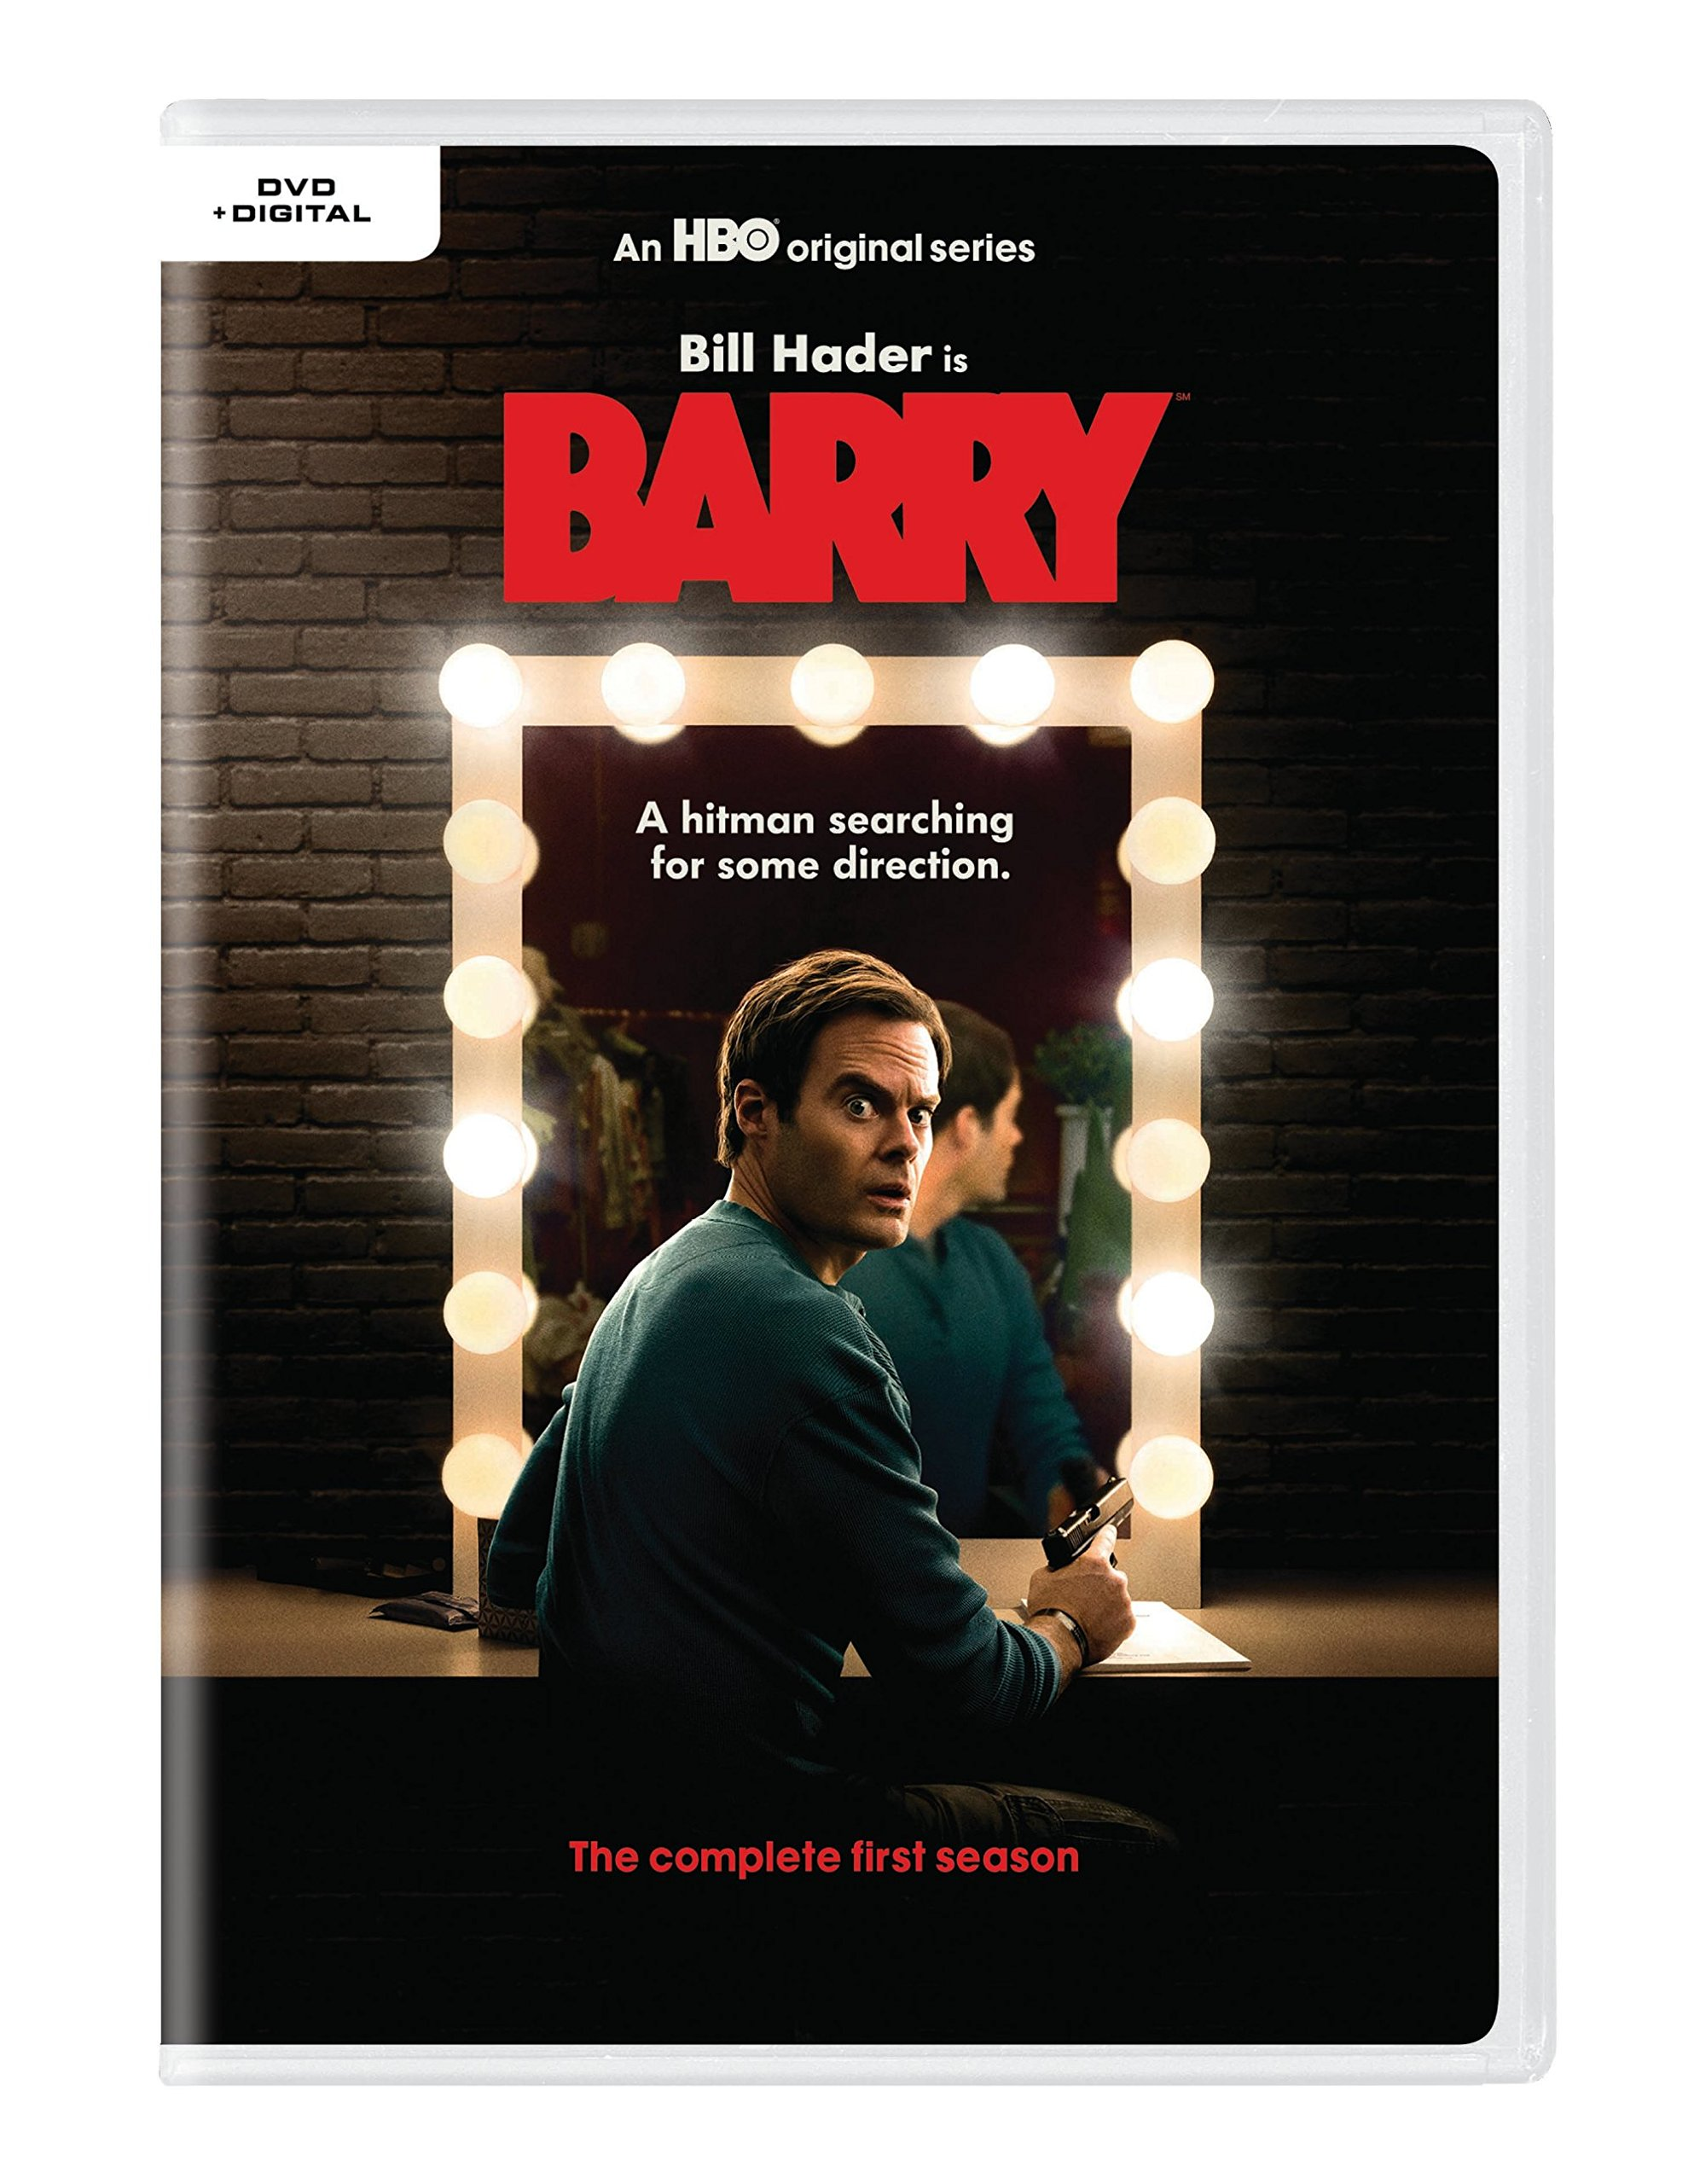 DVD : Barry: Season 1 (Ultraviolet Digital Copy, Special Edition, Digital Copy, Eco Amaray Case)